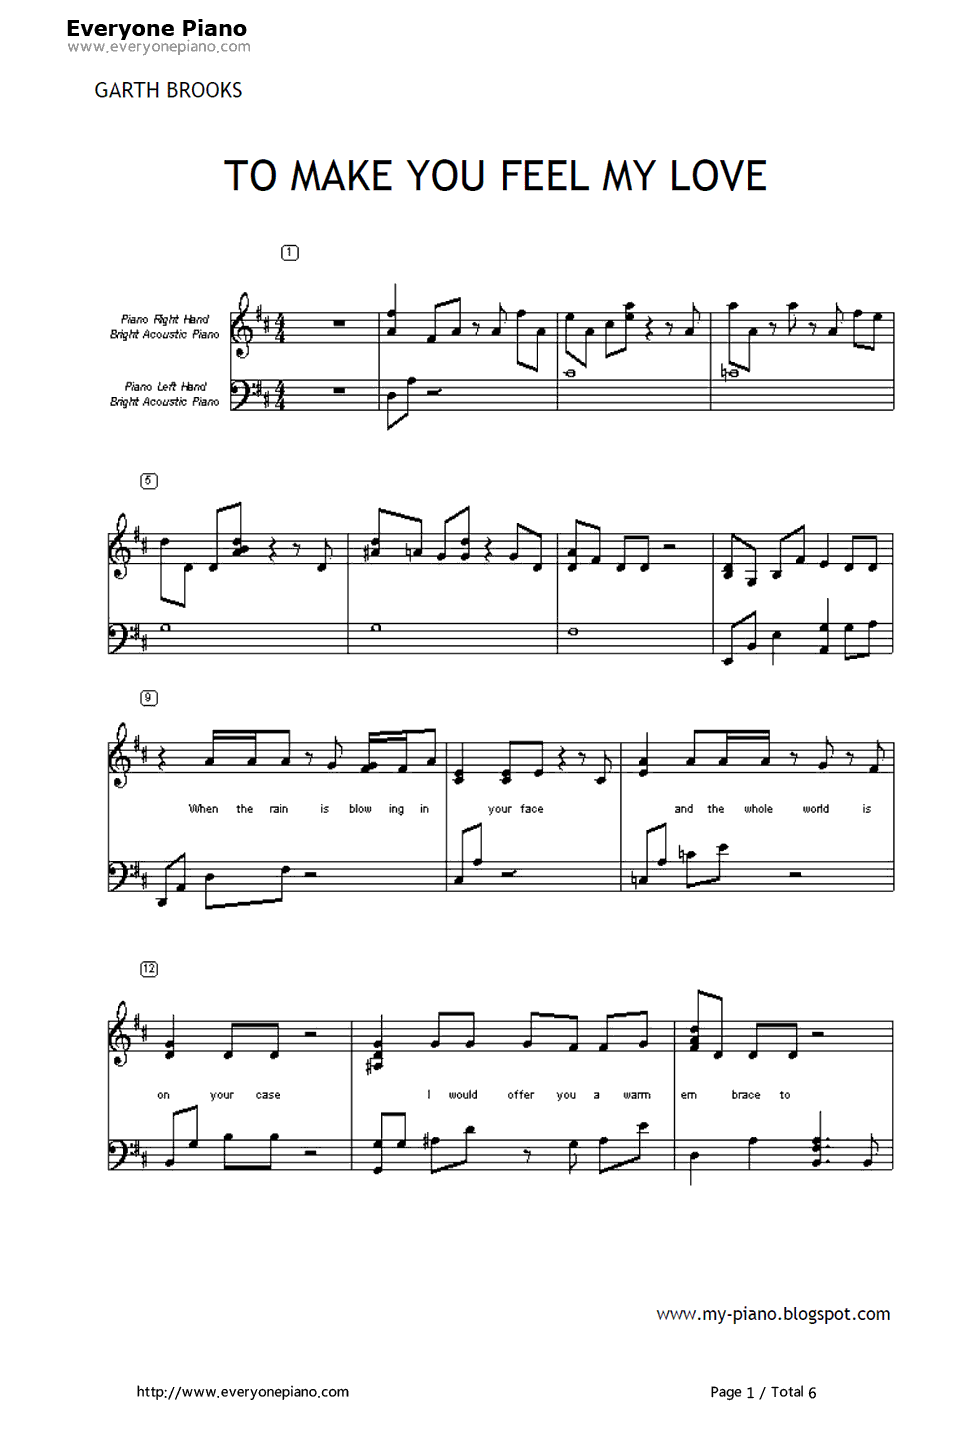 To Make You Feel My Love-Garth Brooks Stave Preview 1-Free Piano Sheet Music u0026 Piano Chords